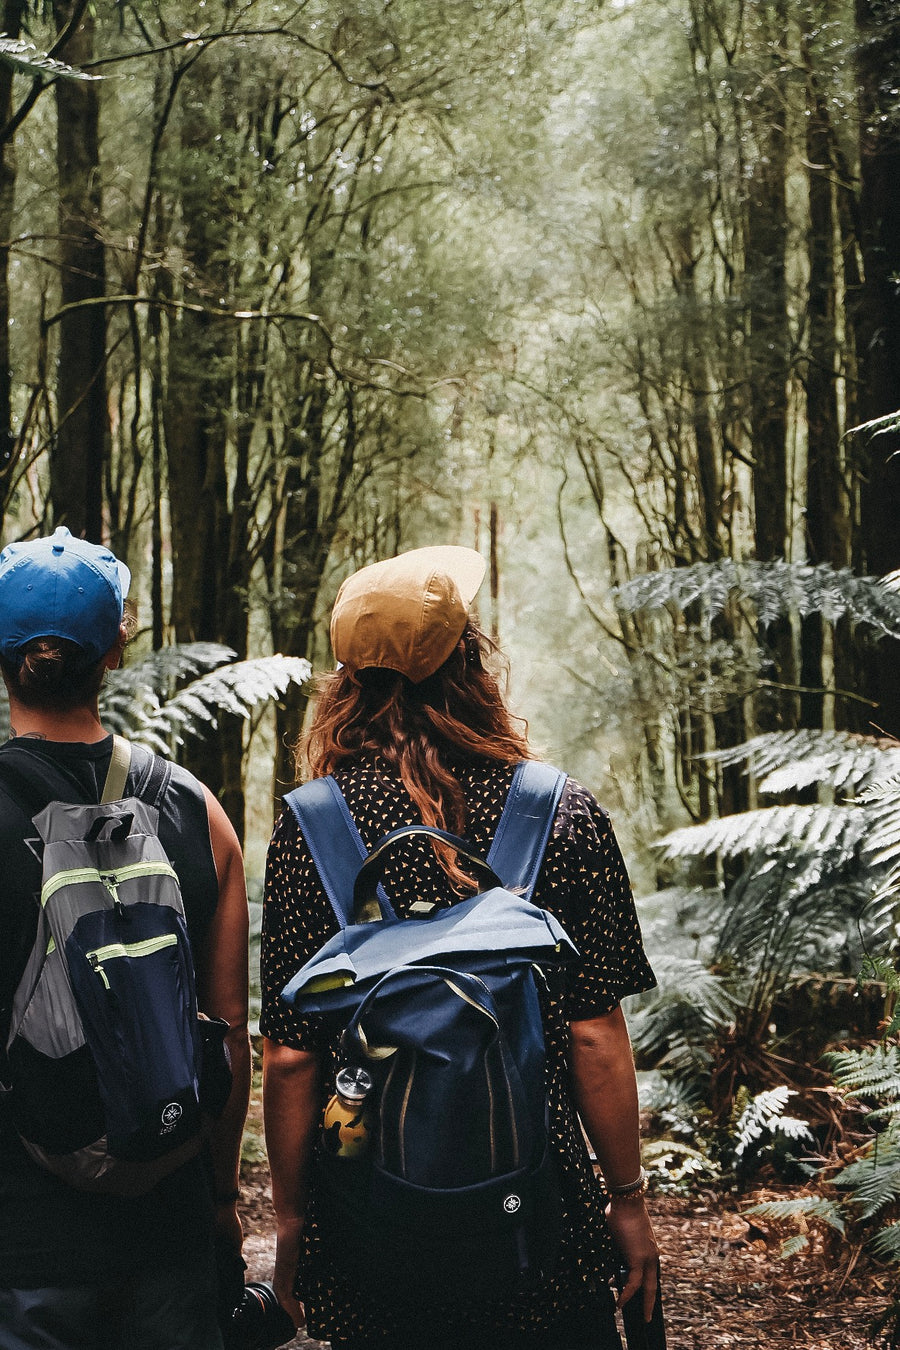 Two male friends walk through the forest on Hike & Seek 12 Apostles, Otways & Great Ocean Road day tour